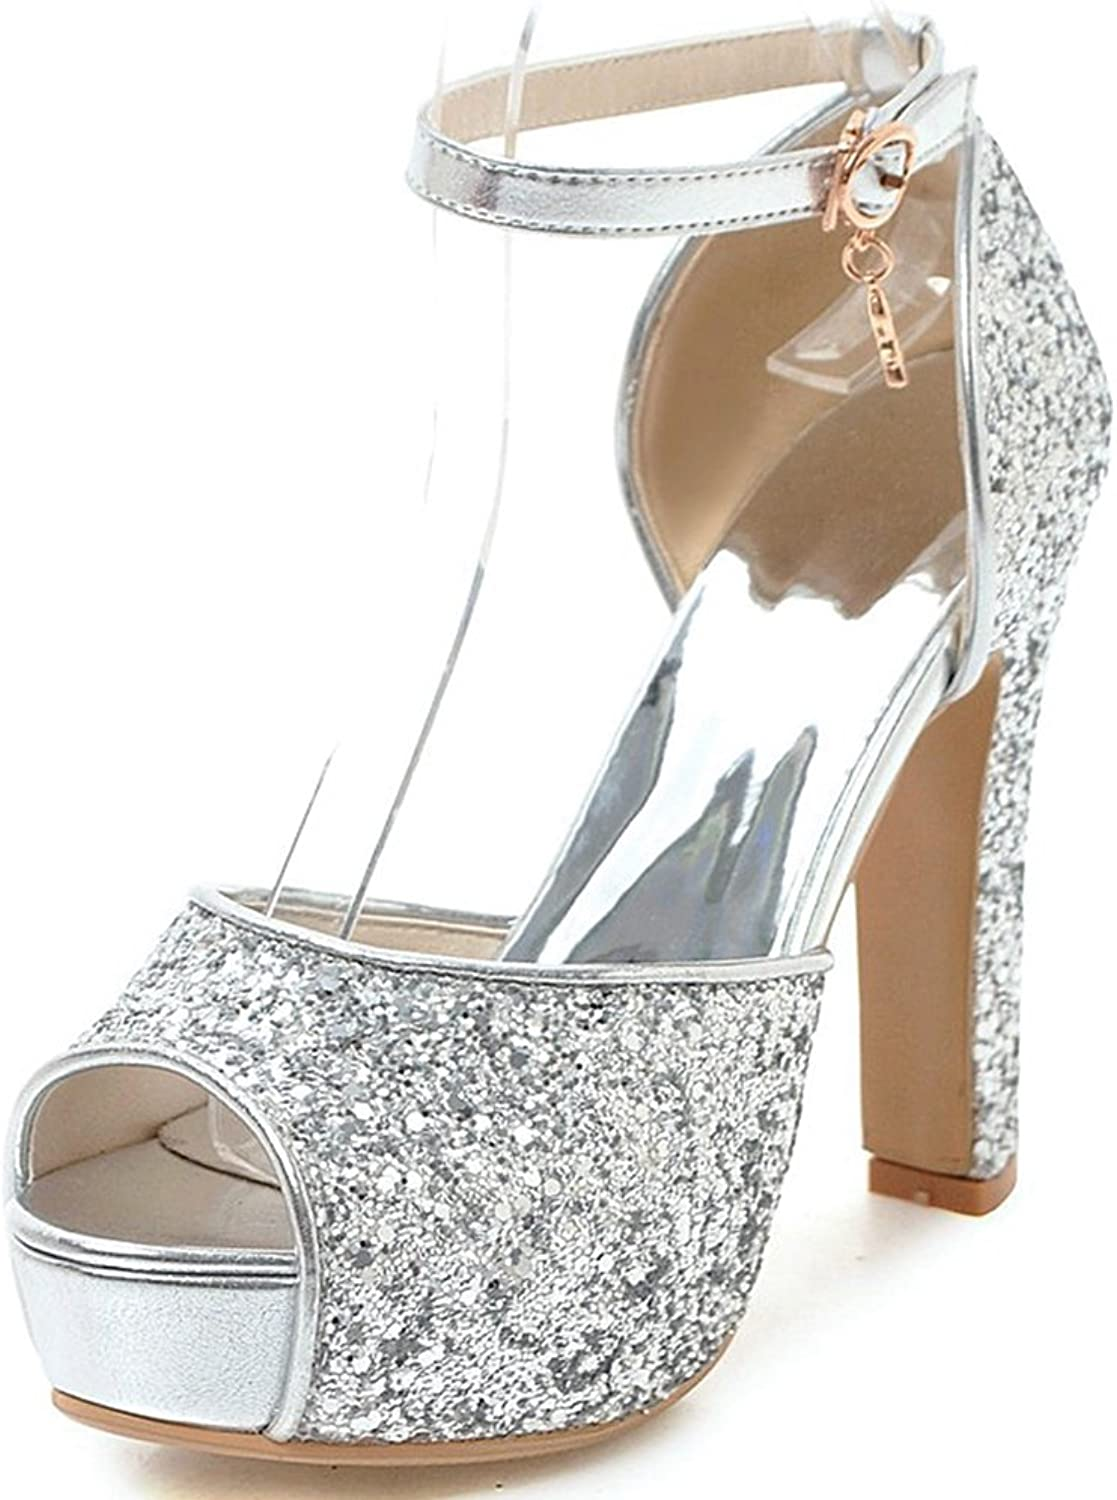 SaraIris Women's Open Toe Summer shoes Chunky High Heel Glitter Ankle Strap D-Orsay Party Dress Sandals